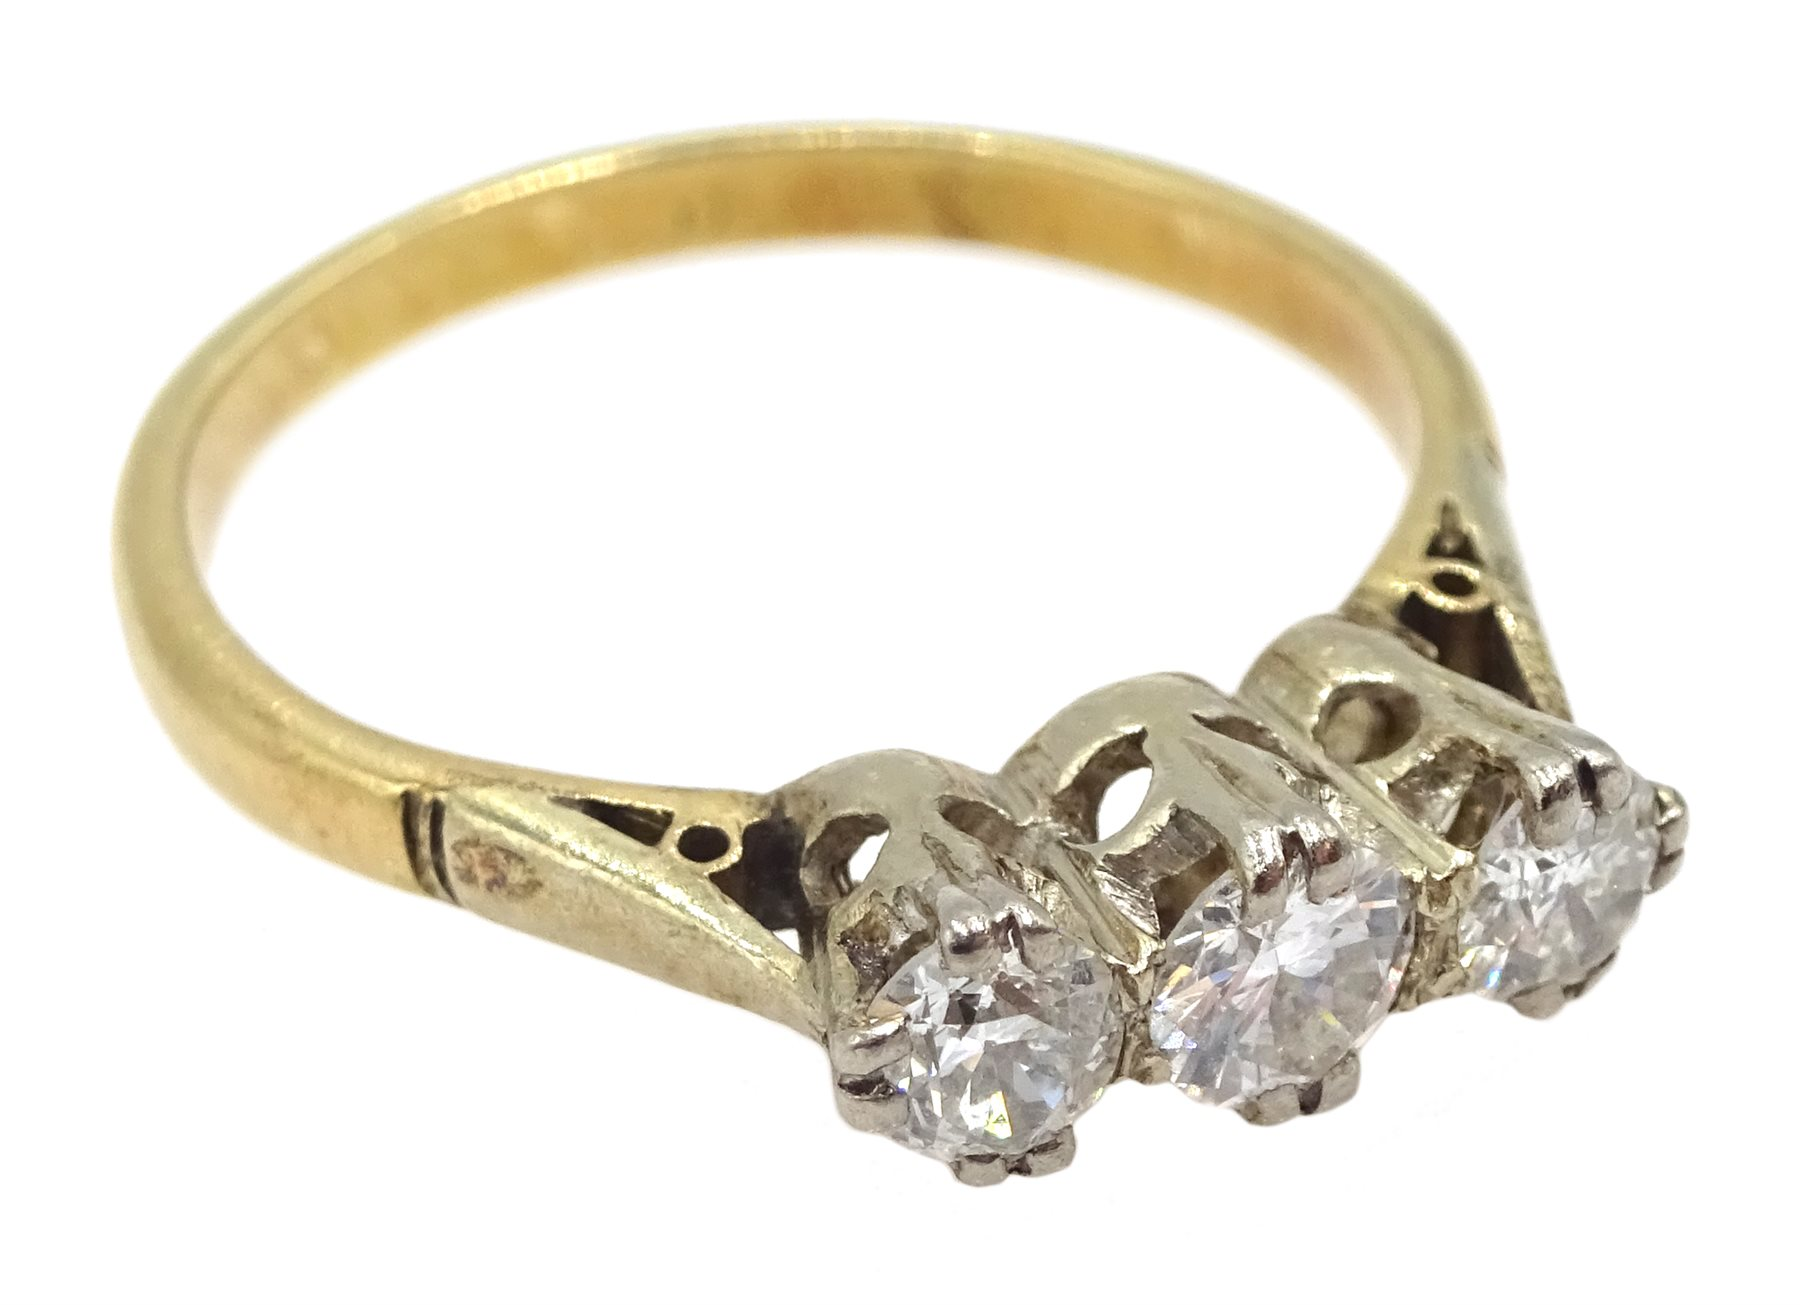 15ct gold three stone round brilliant cut diamond ring, total diamond weight approx 0.40 carat - Image 2 of 3